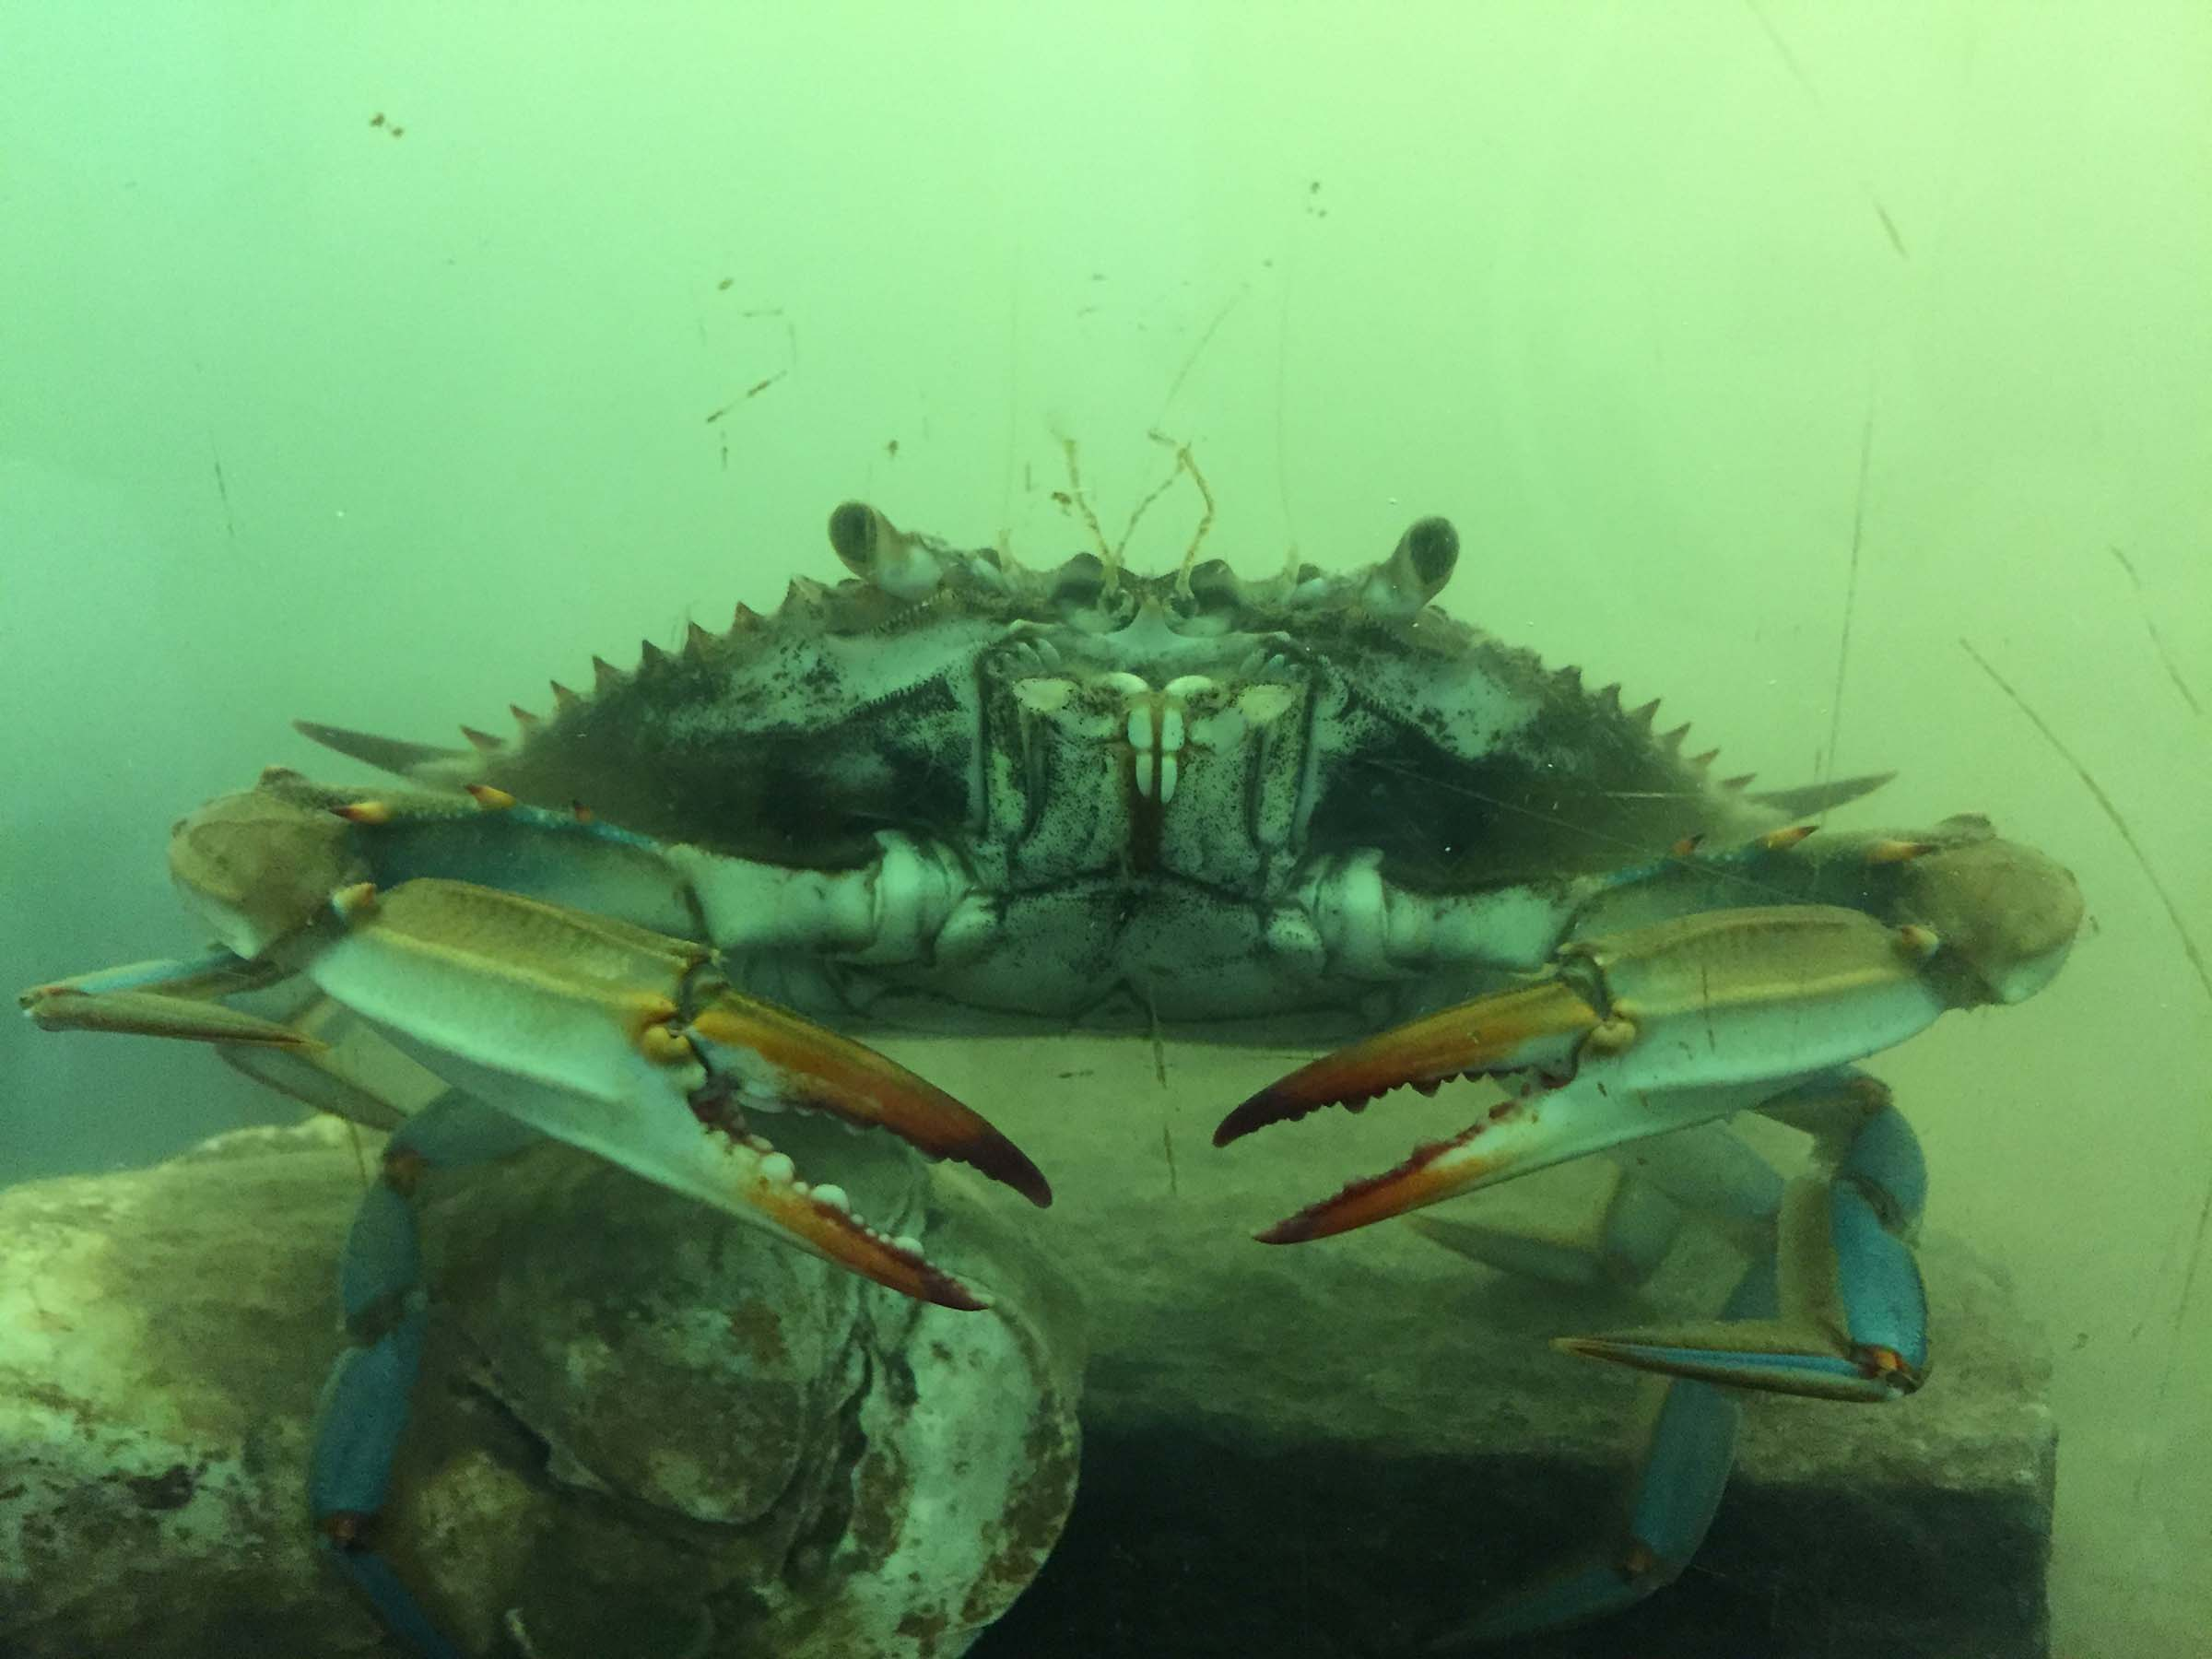 A blue crab with its red pinchers looks at the camera